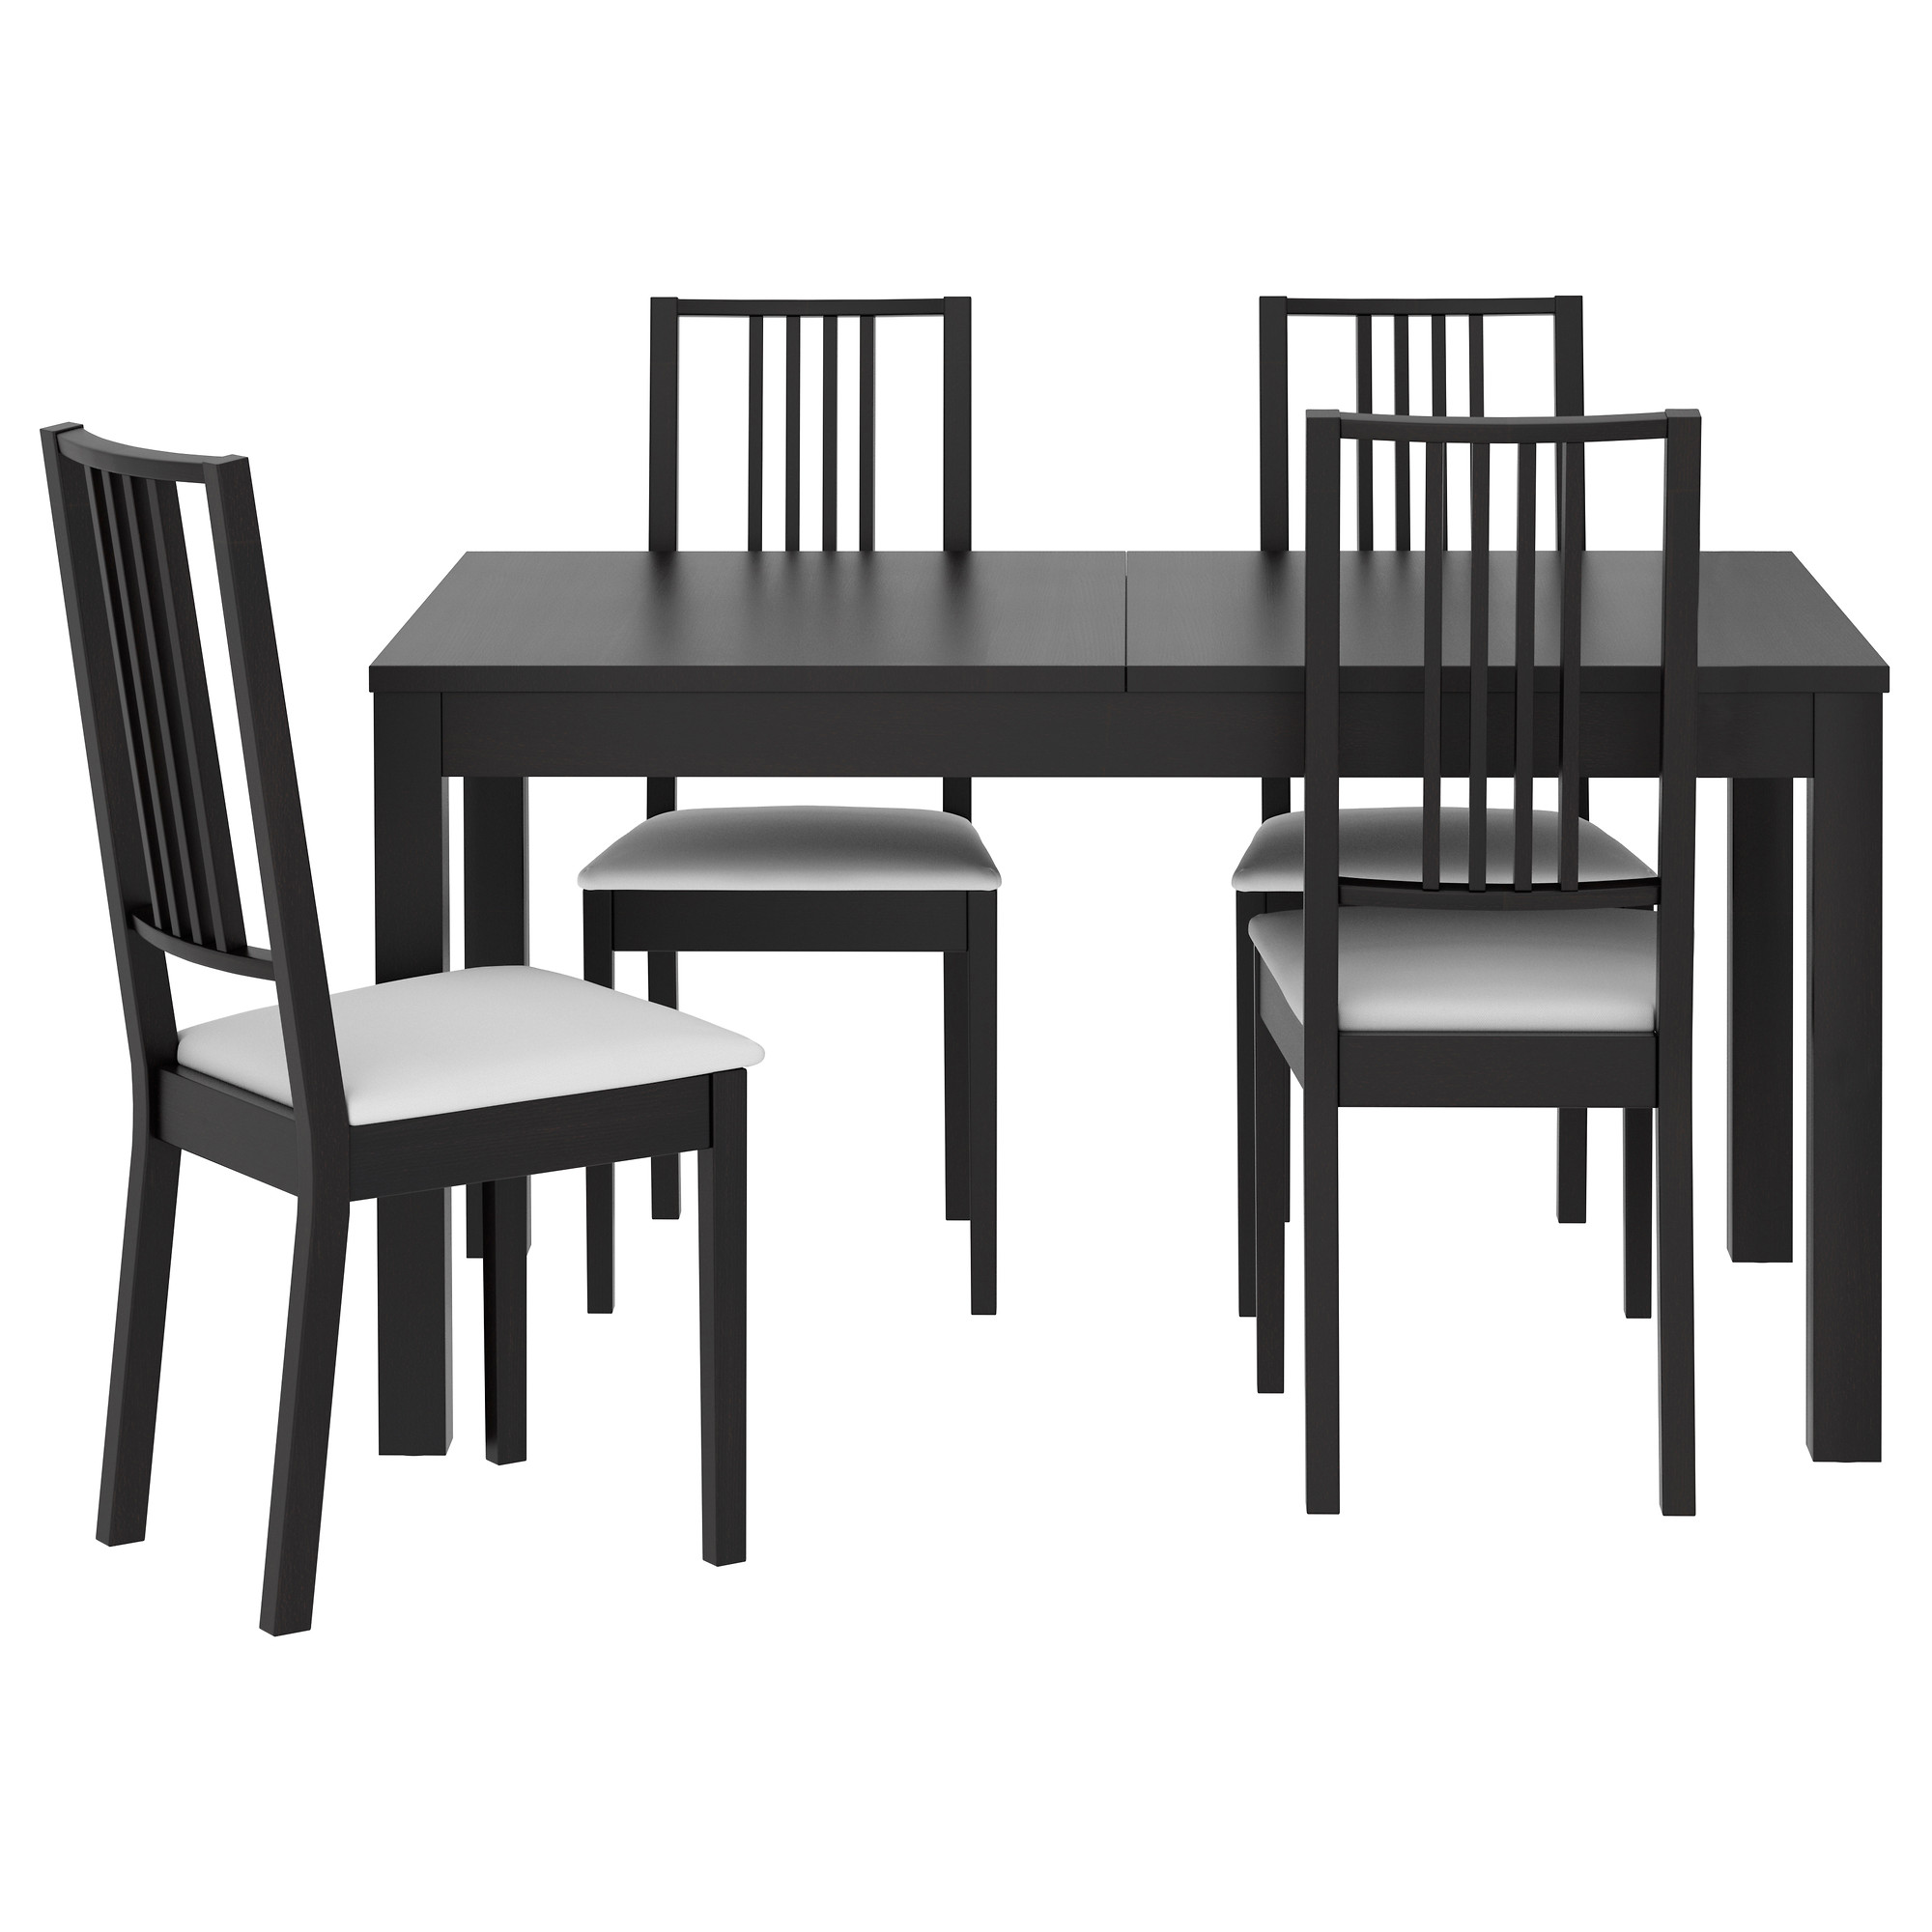 Delightful Kitchen Table And Chairs Ikea #5: BJURSTA / BÖRJE Table And 4 Chairs - IKEA